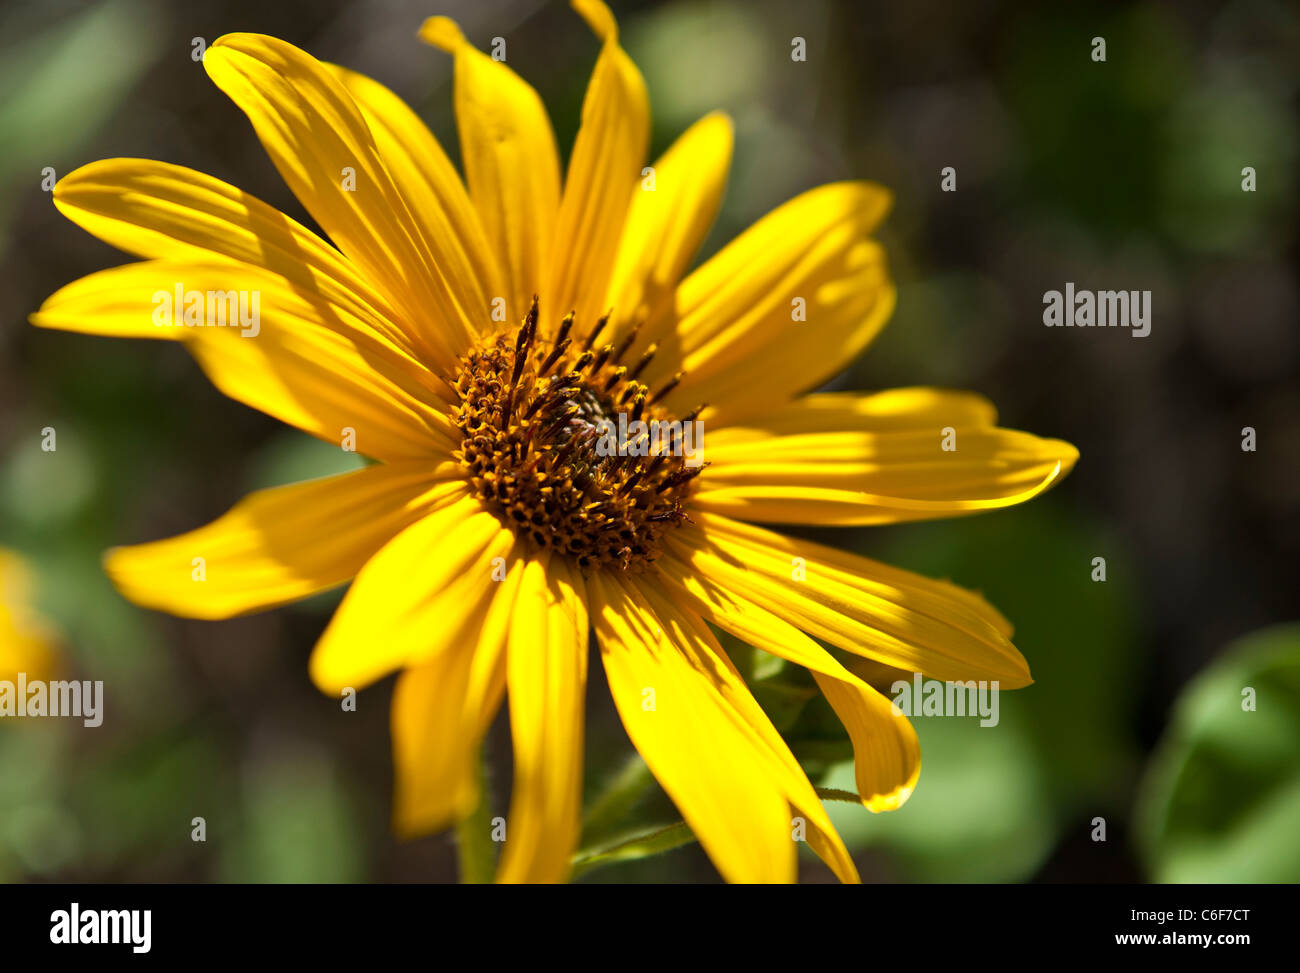 Common sunflower is a widely branching, stout annual, 1 1/2-8 ft. tall, with coarsely hairy leaves and stems. - Stock Image